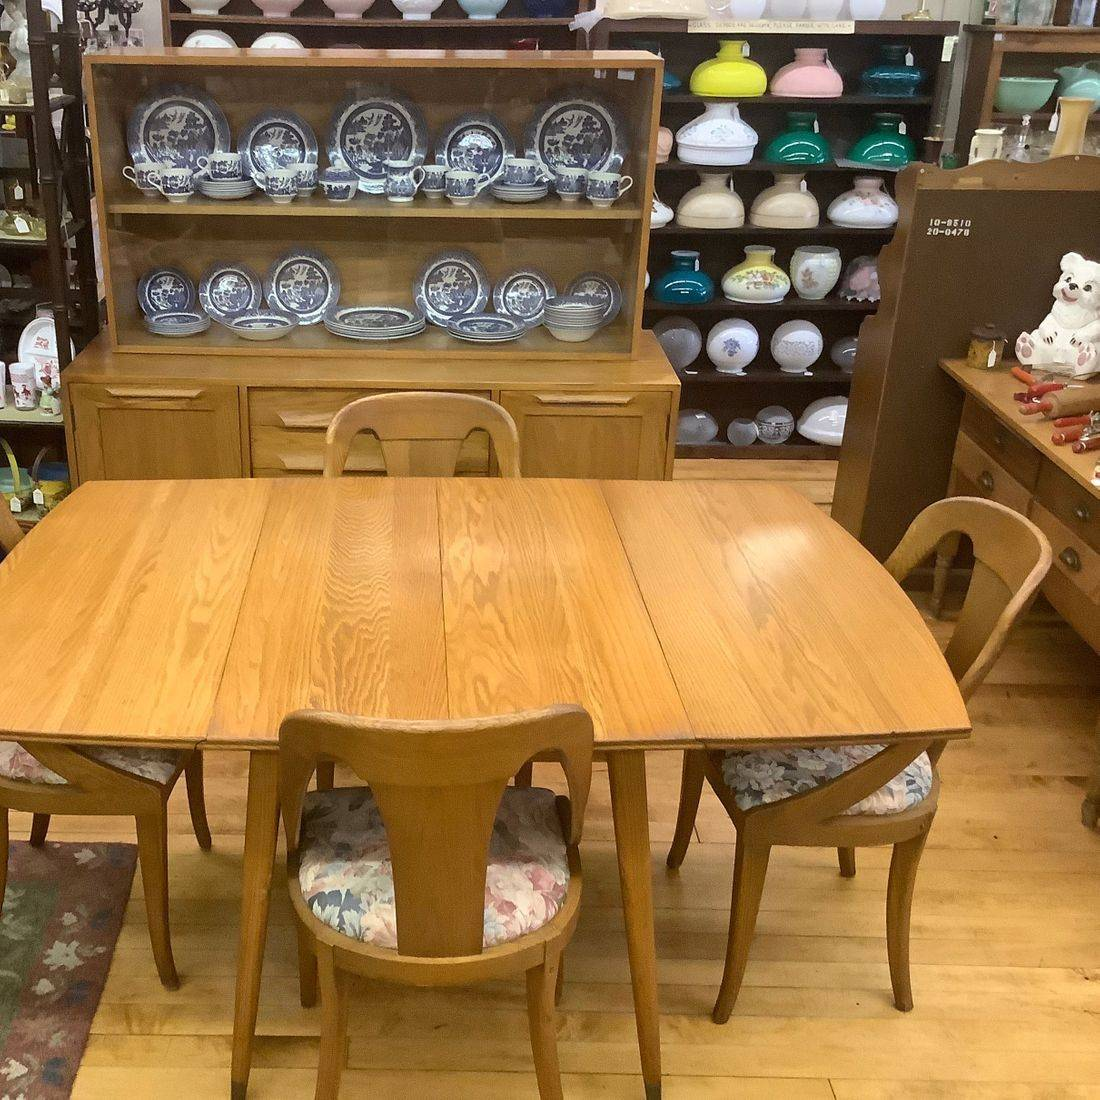 """1955 Jamestown Lounge Modern Oak Break front and Dining Table w/4 Chairs, 3-10"""" Leafs and Pads   $750.00"""